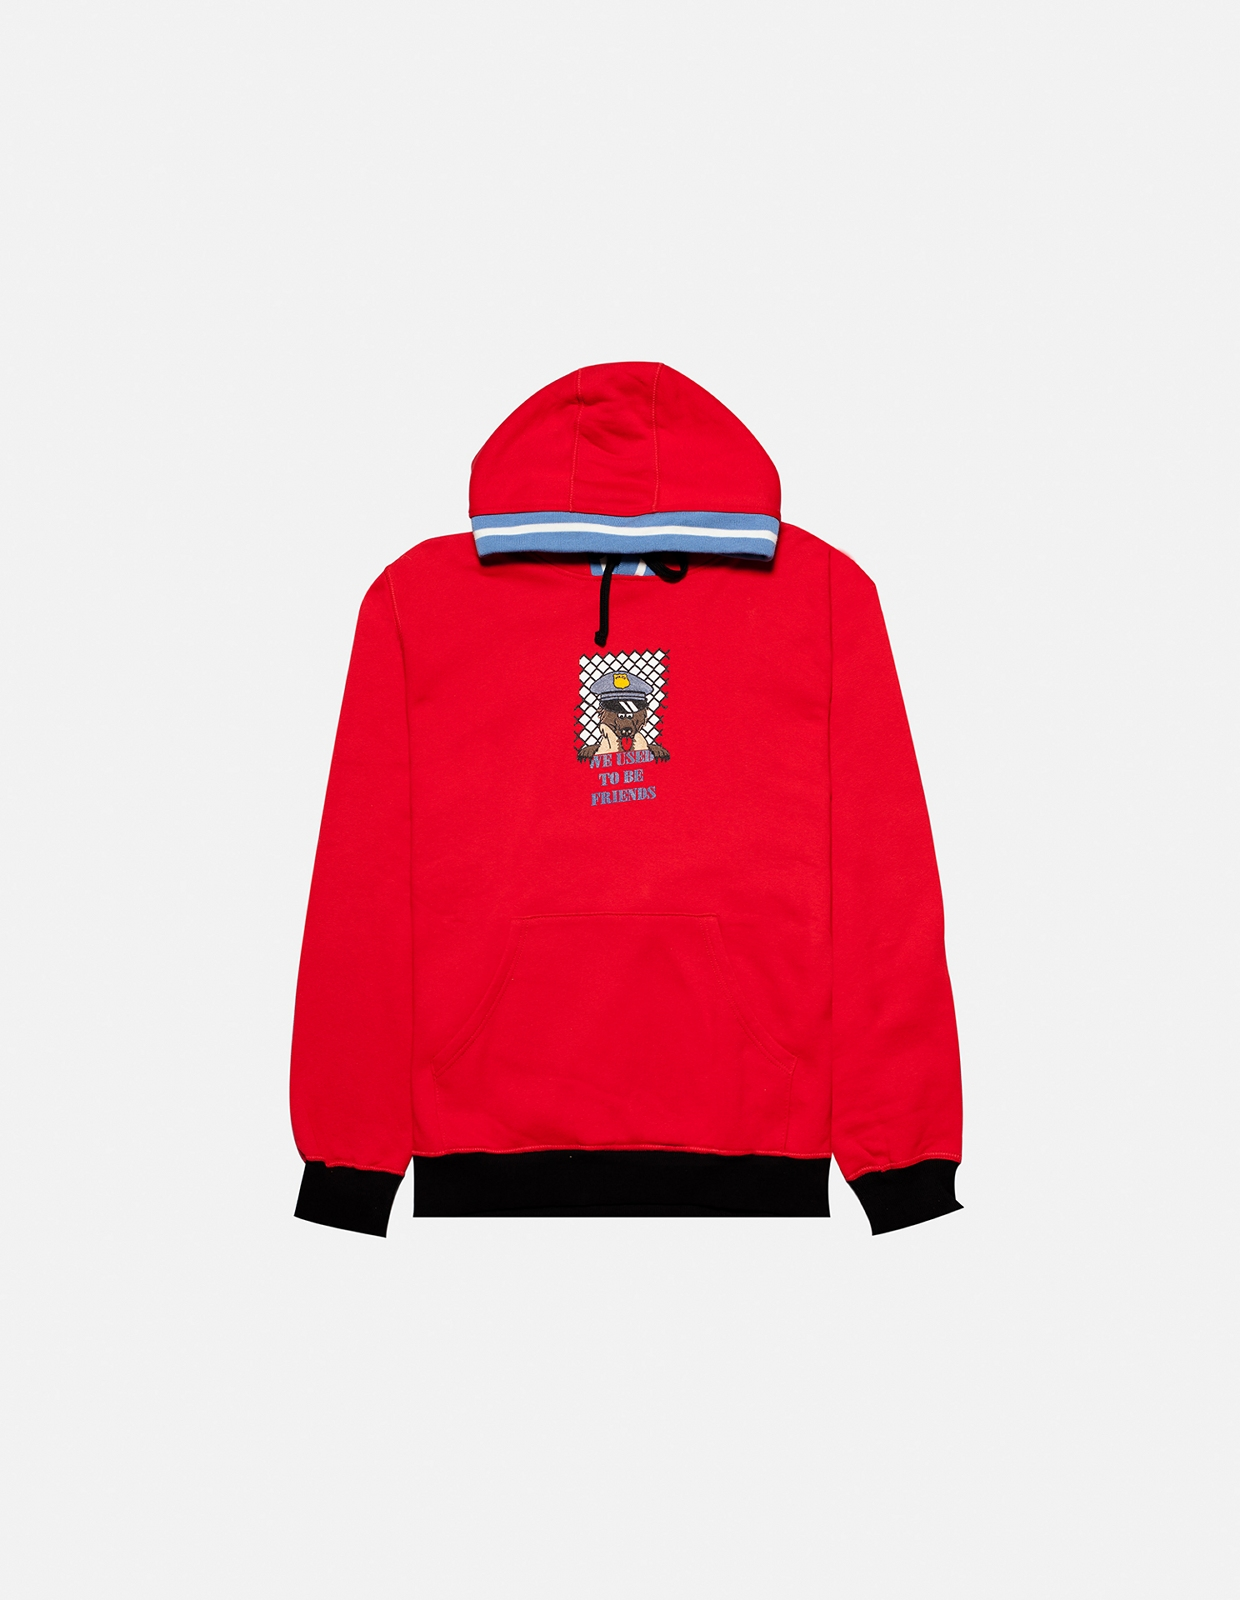 【PAS DE MER/パドゥメ】BEST FRIEND HOODY パーカー / OLD RED